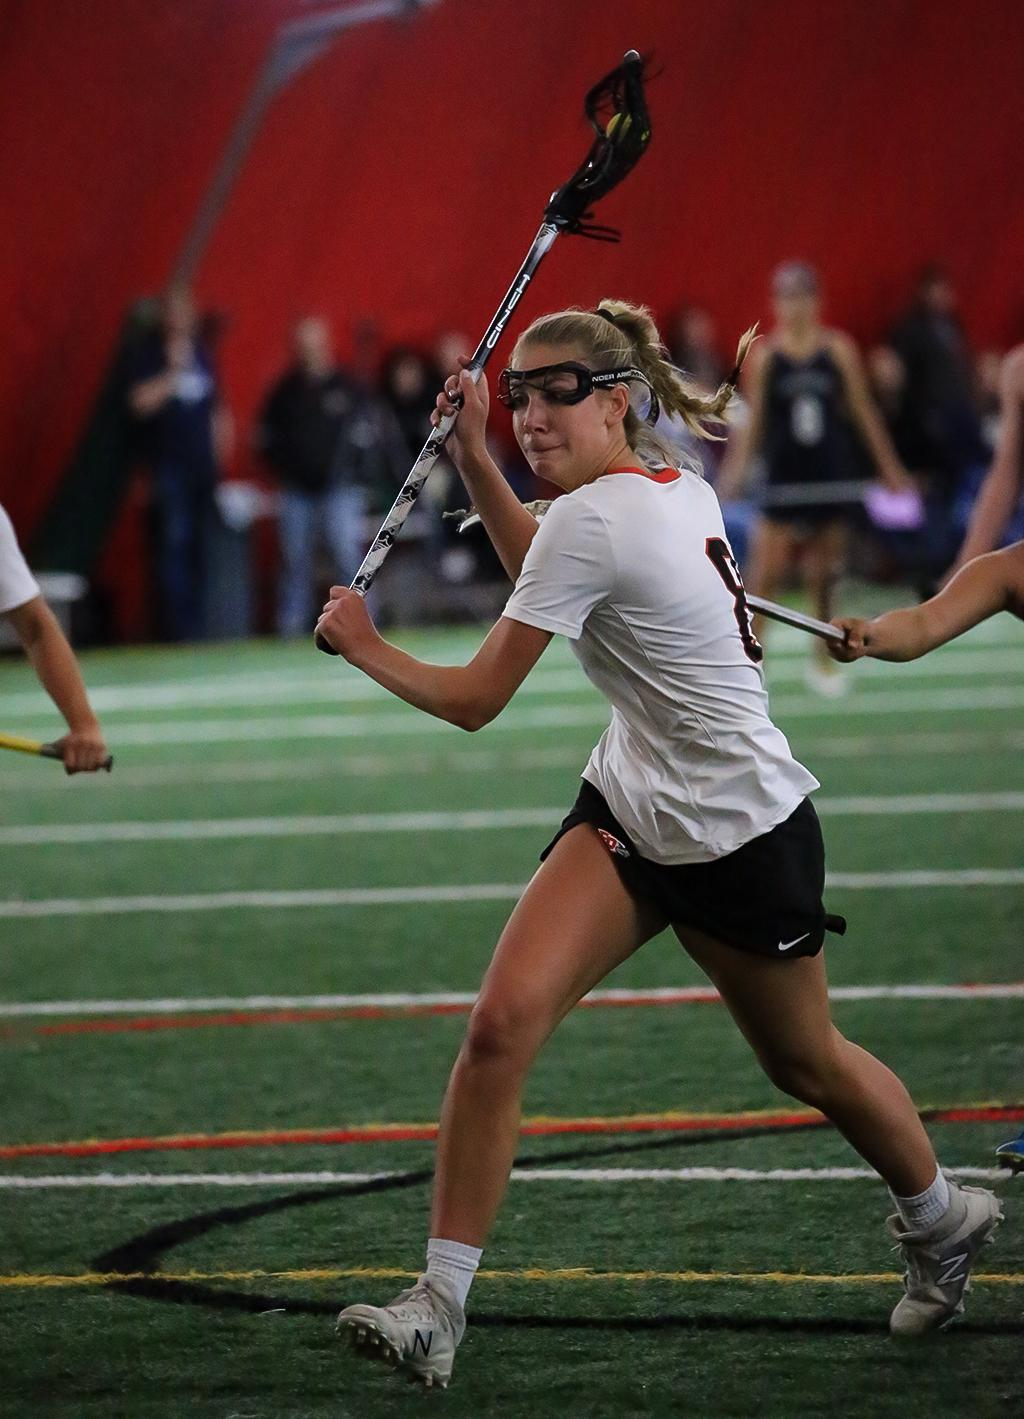 Brooke Lewis fires off a shot from close range, scoring one of her five goals for the Eagles. Eden Prairie pulled away in the second half to top Chanhassen 16-9 on Tuesday night. Photo by Cheryl Myers, SportsEngine